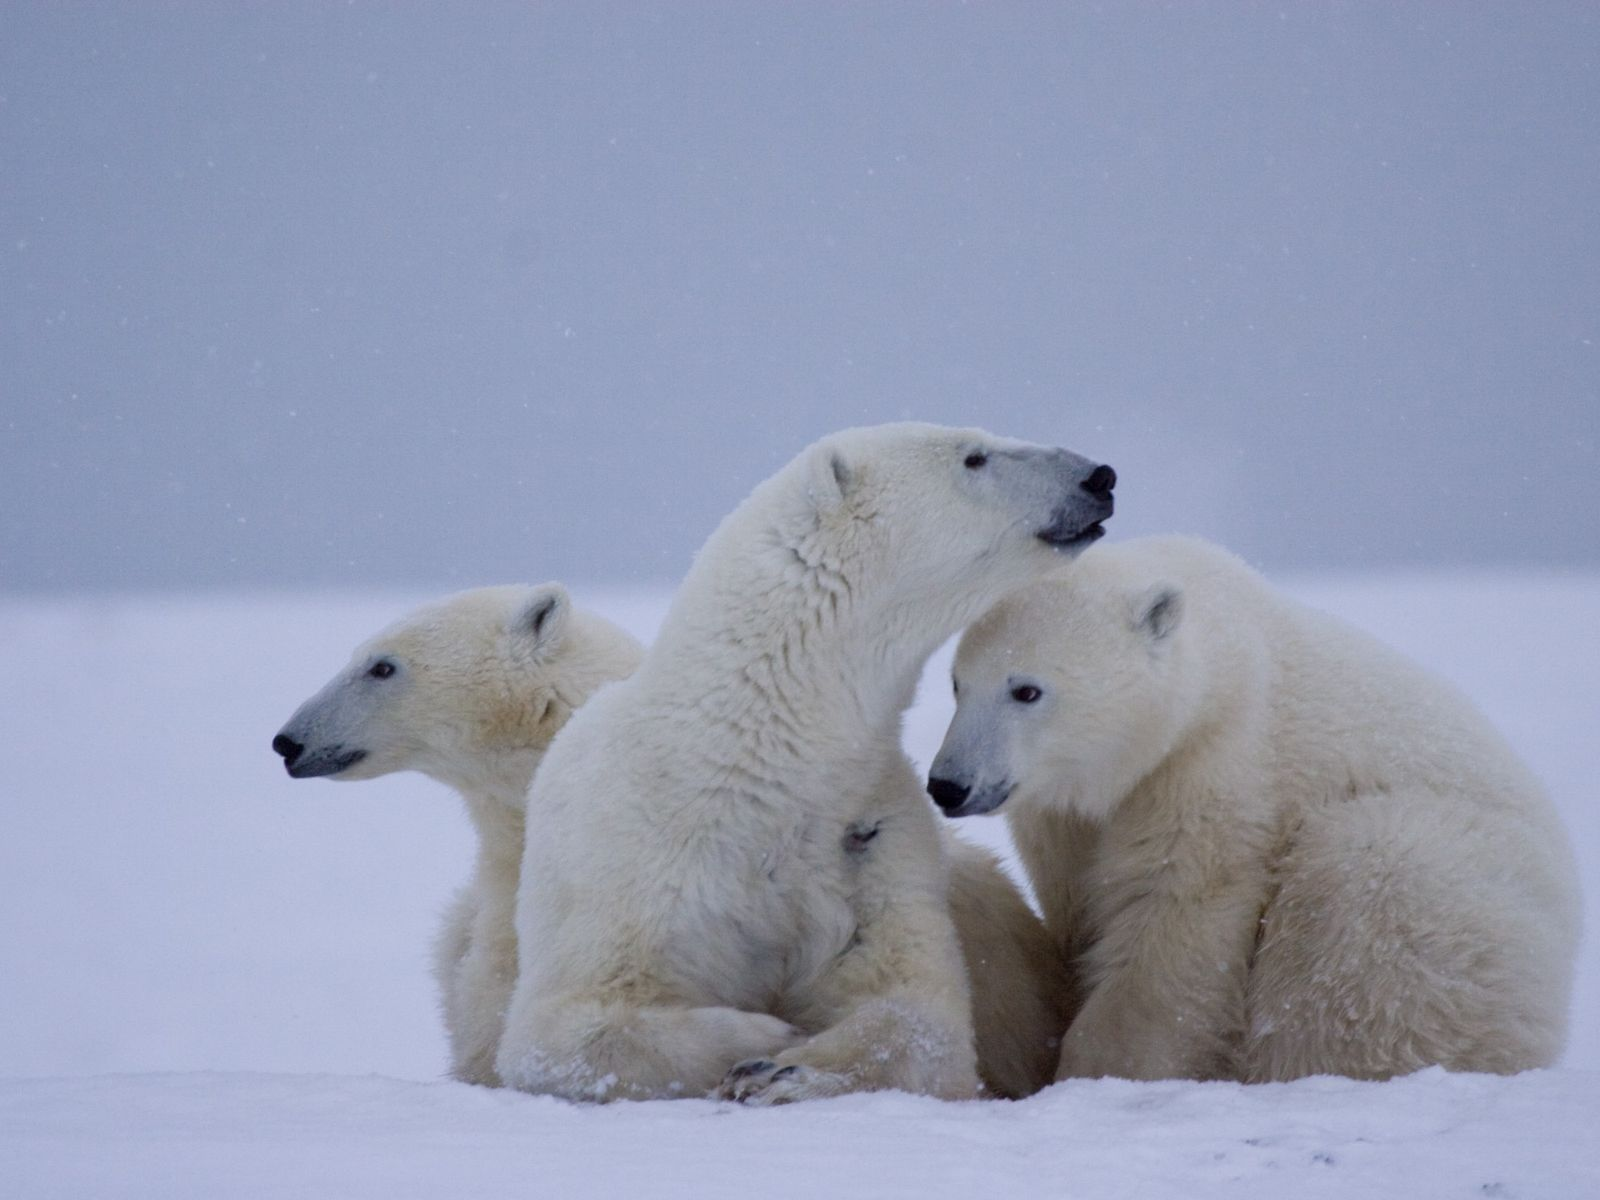 You can experience up-close visits with Polar Bears during winter and summer in Churchill, Manitoba.